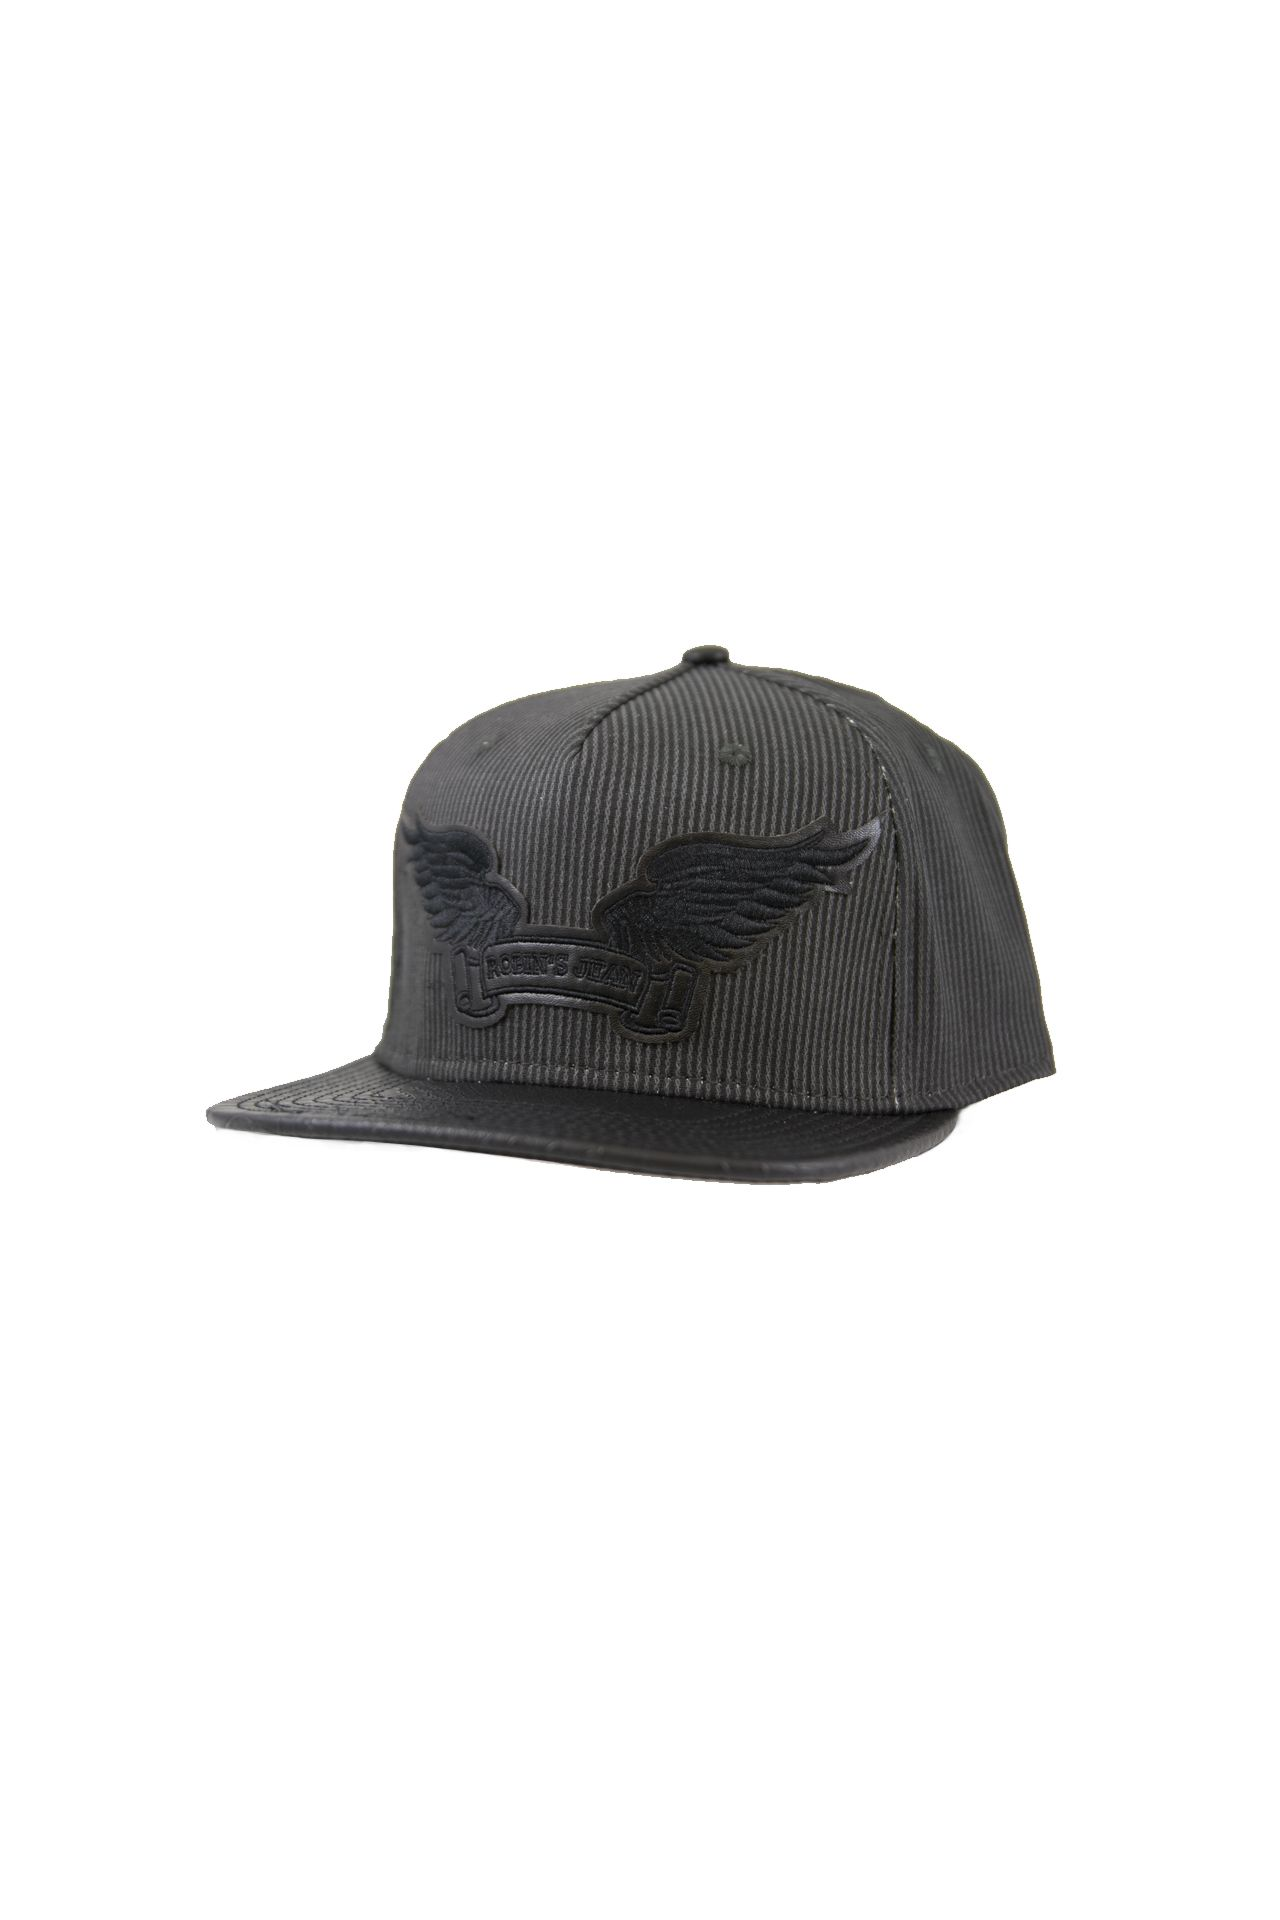 GREY STRIPES LEATHER LOOK CAP